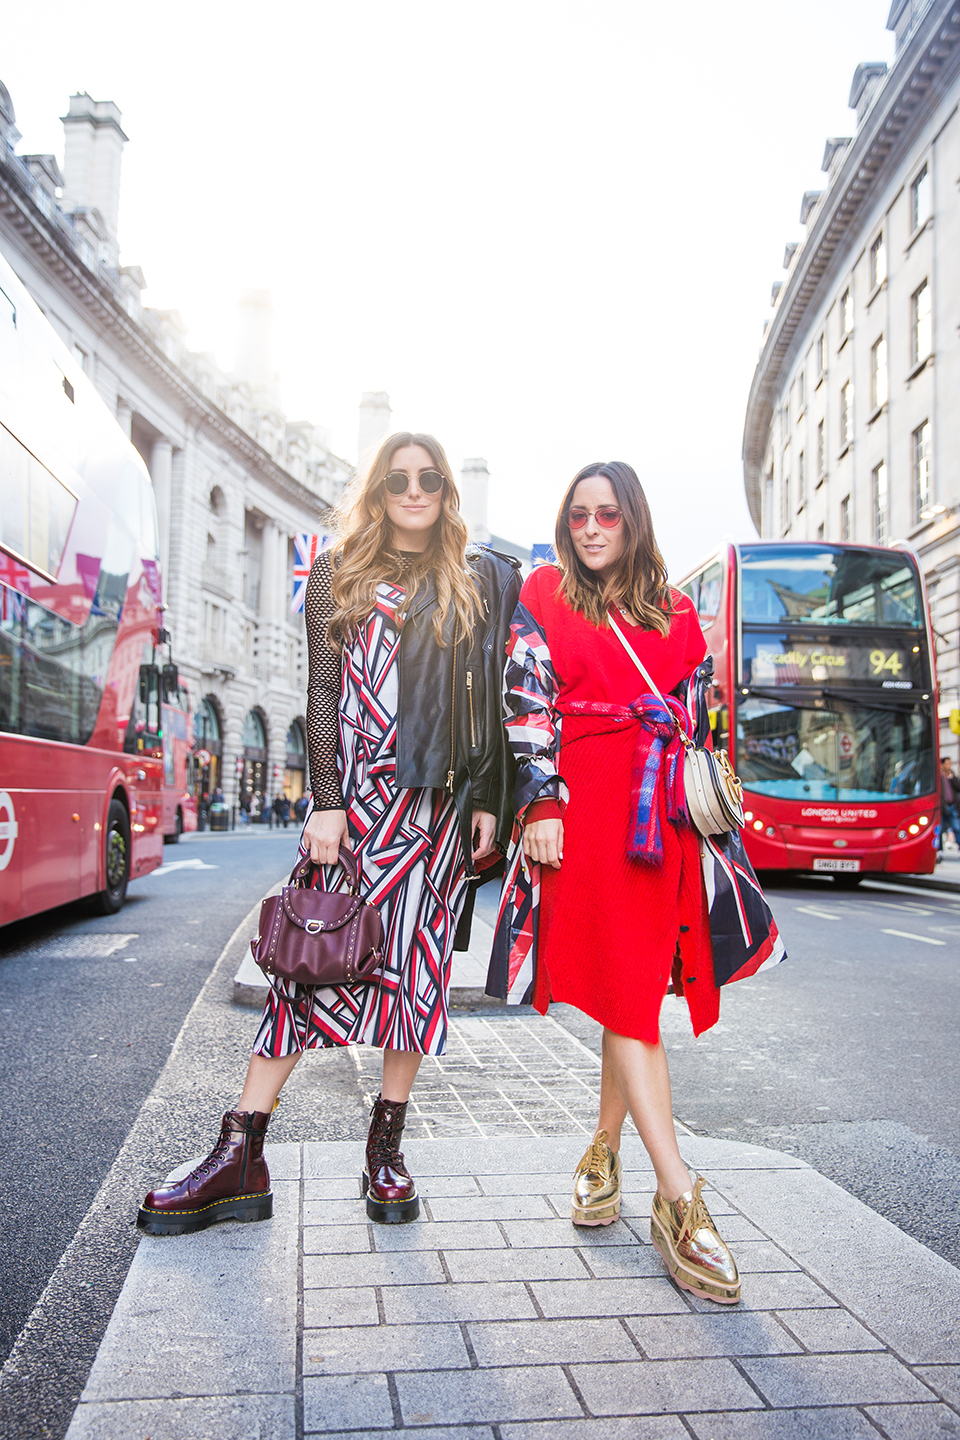 london, fashion week, my philosophie, sofia lascurain, style, london, london fashion week, ari camacho